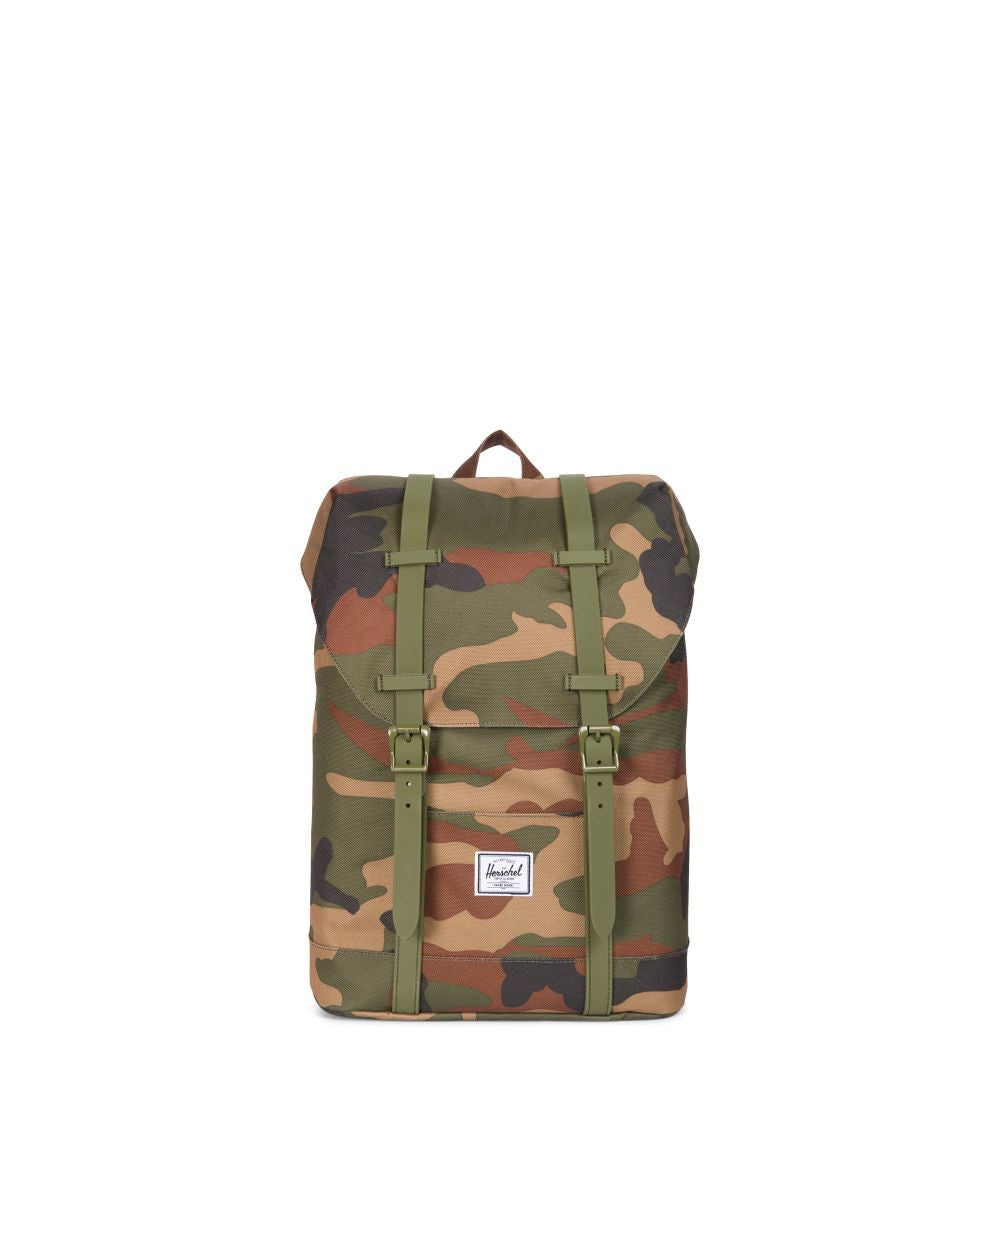 Retreat Backpack Youth - Woodland Camo Army Rubber